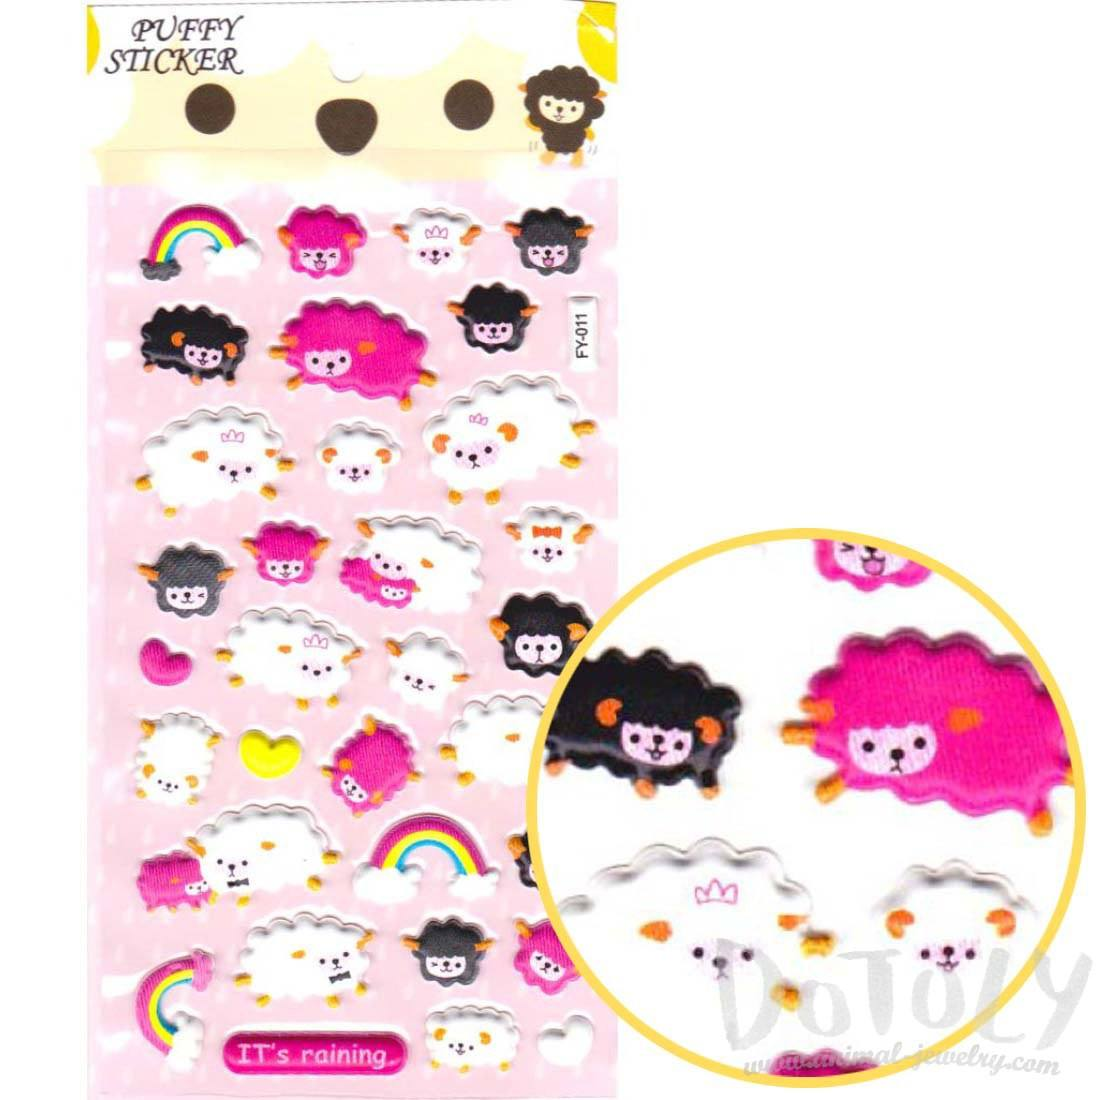 Counting Sheep Shaped Animal Themed Stickers for Kids